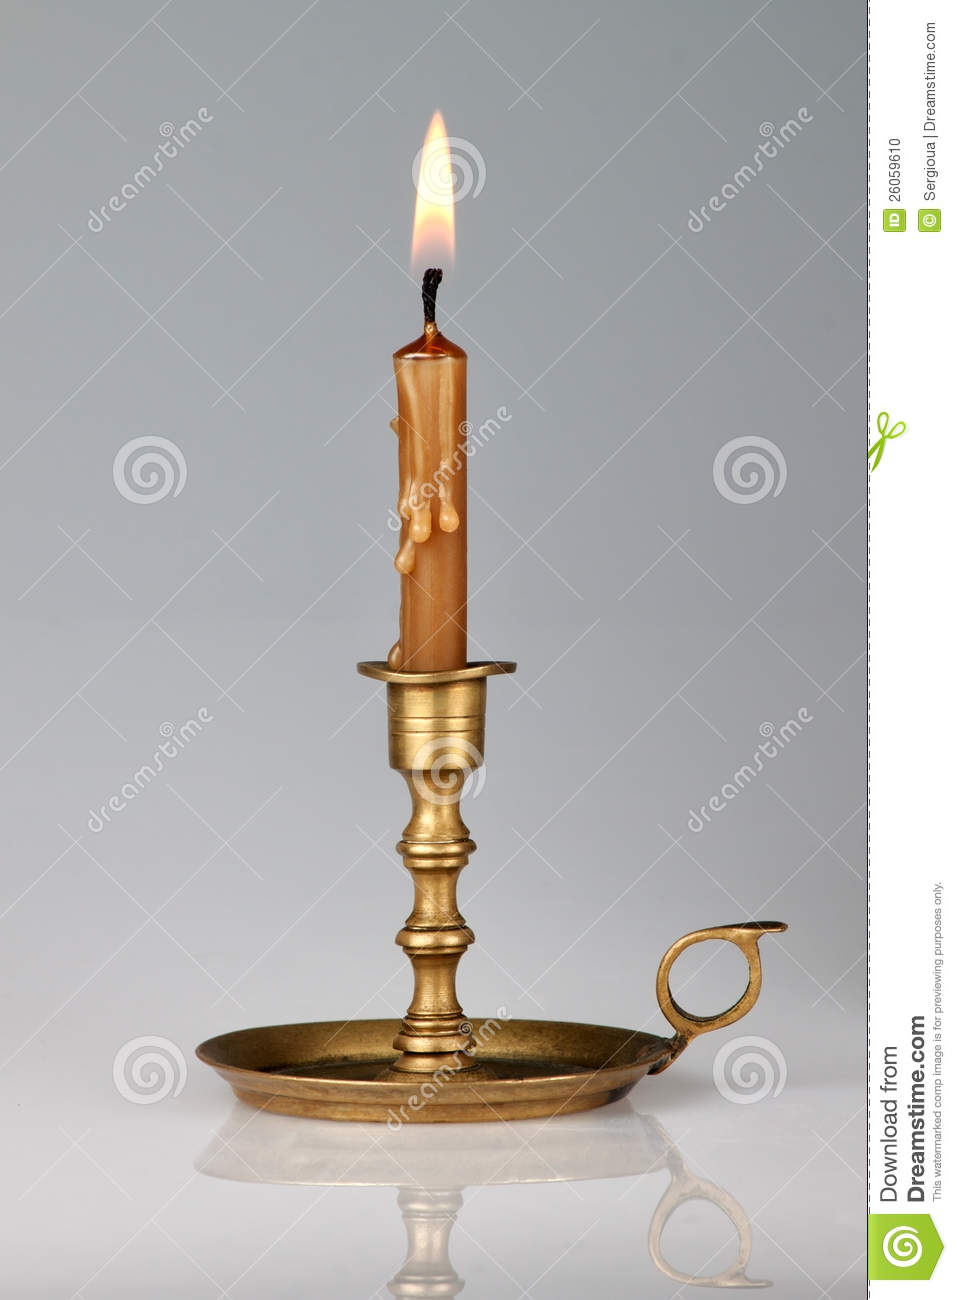 Lighted Candle In An Old Brass Candlestick Stock Photo